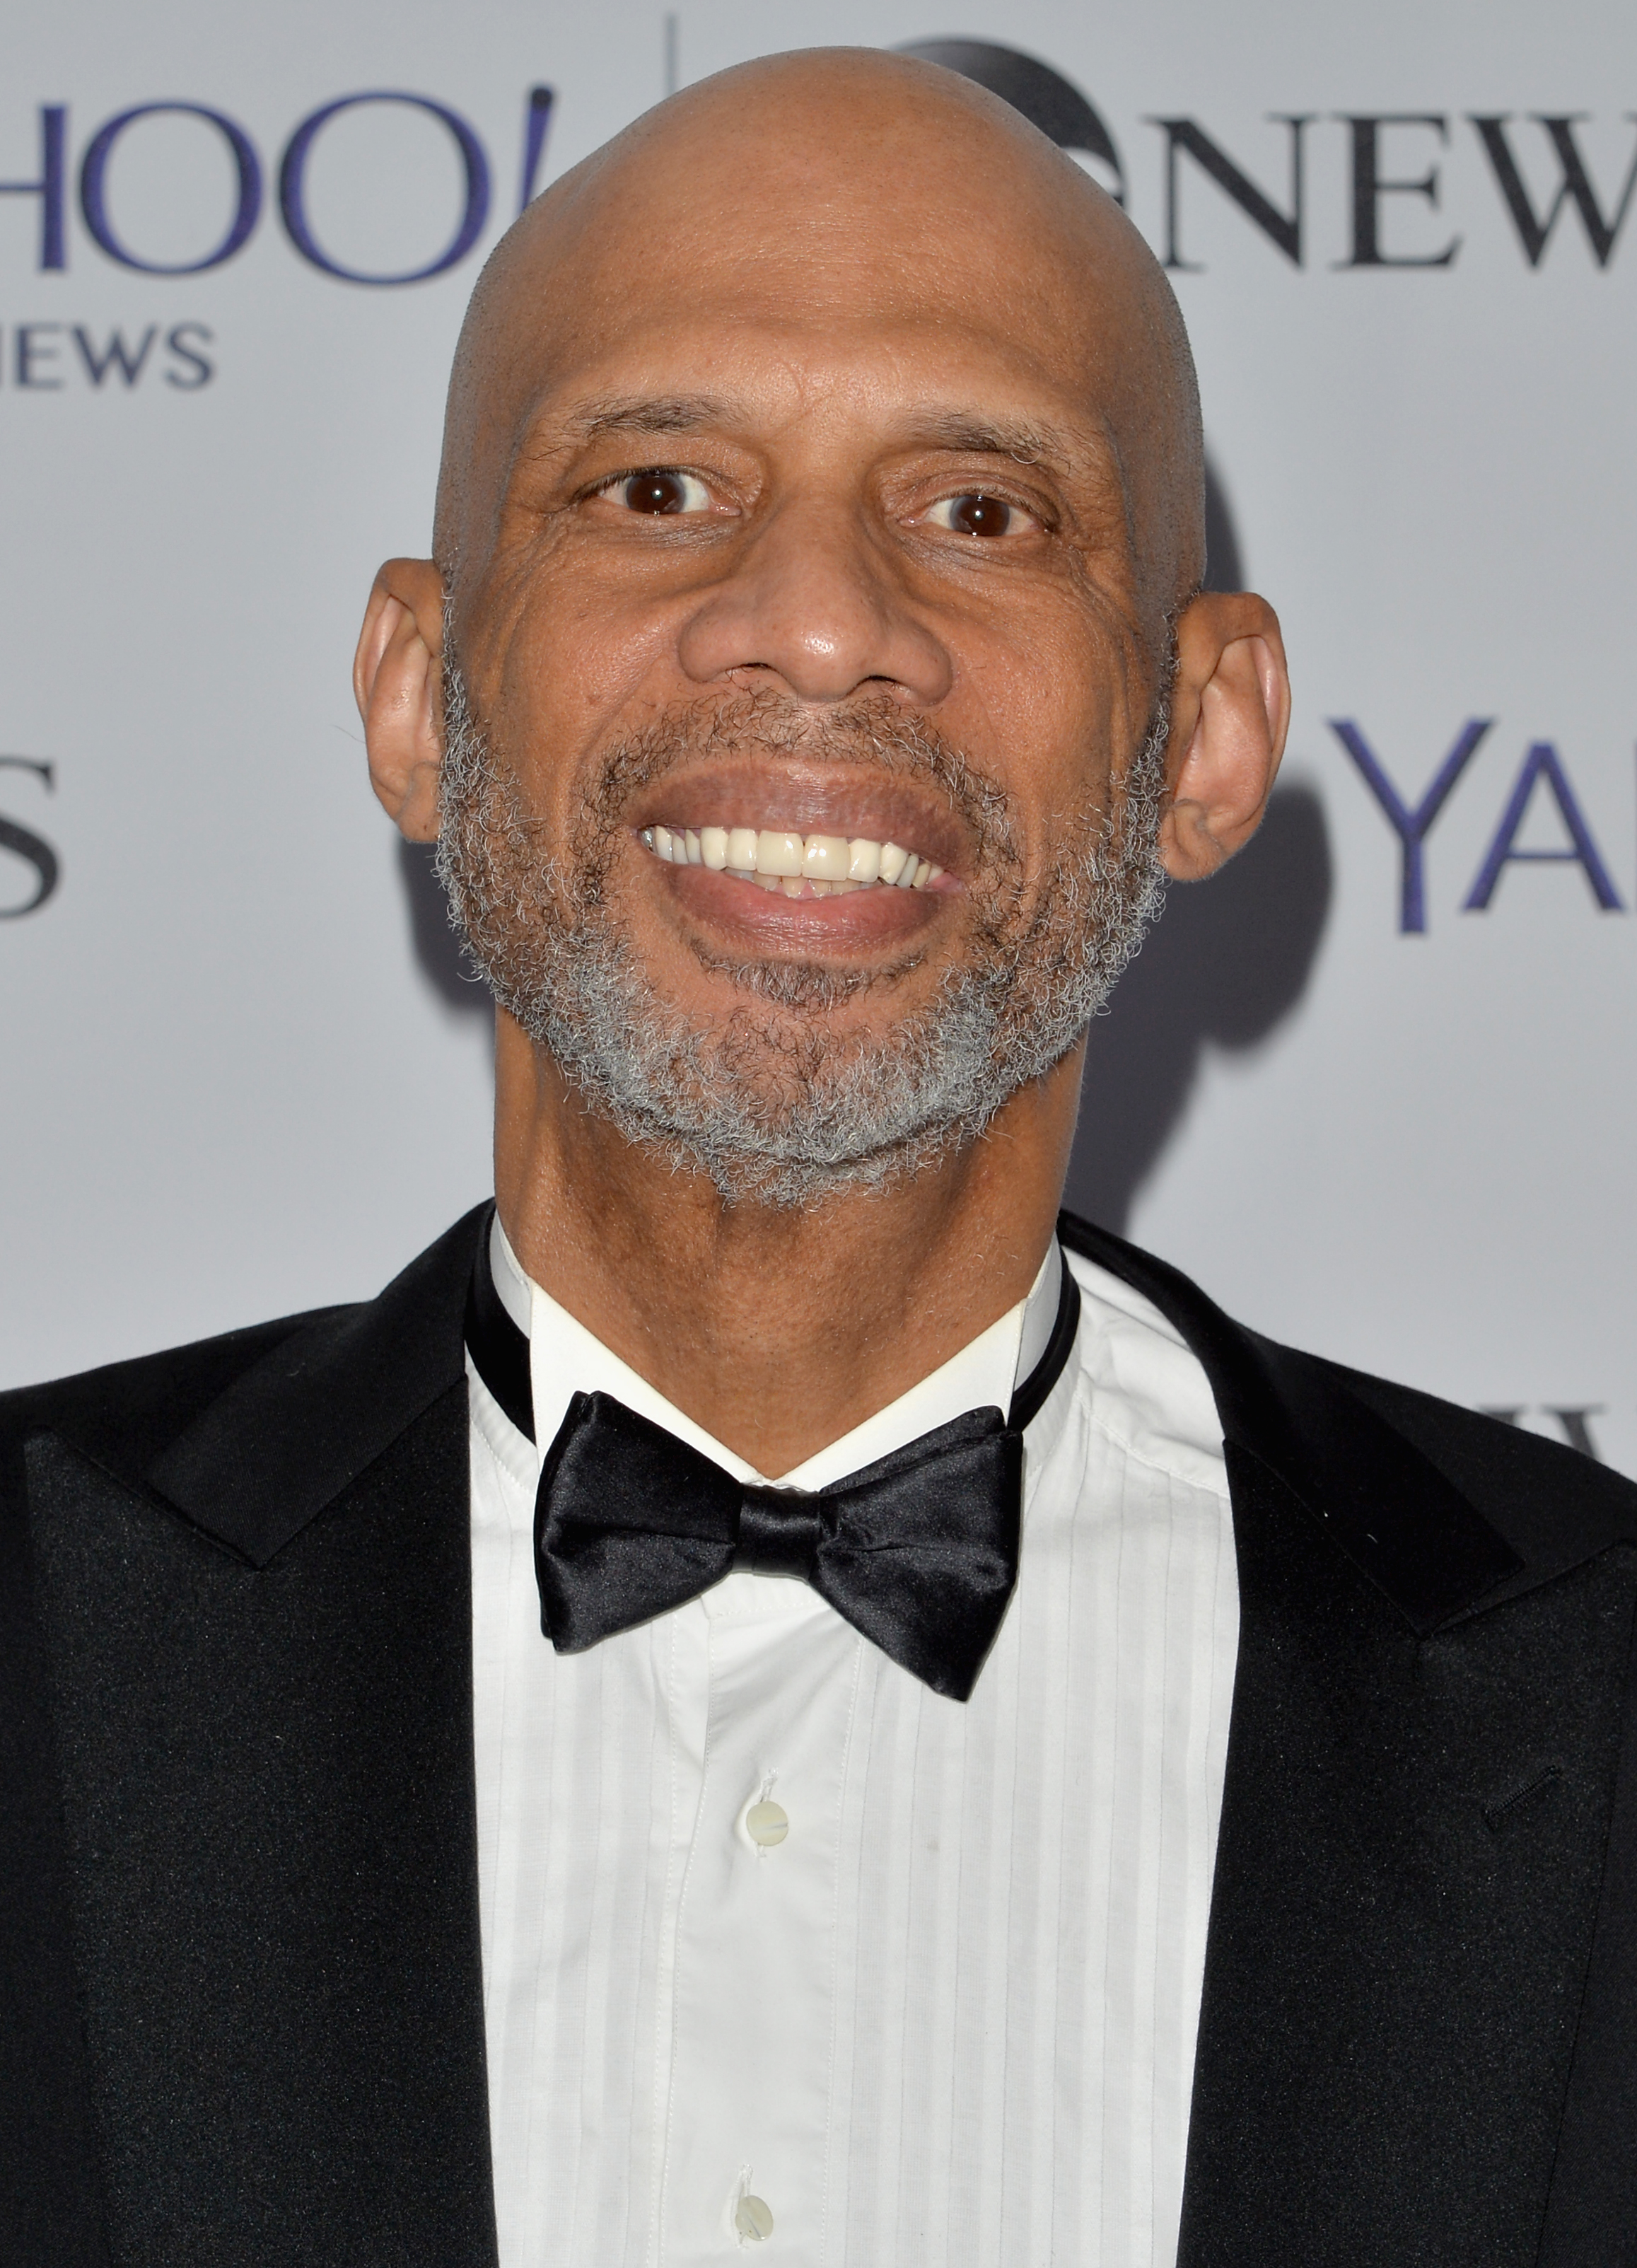 https://upload.wikimedia.org/wikipedia/commons/a/a0/Kareem_Abdul-Jabbar_May_2014.jpg